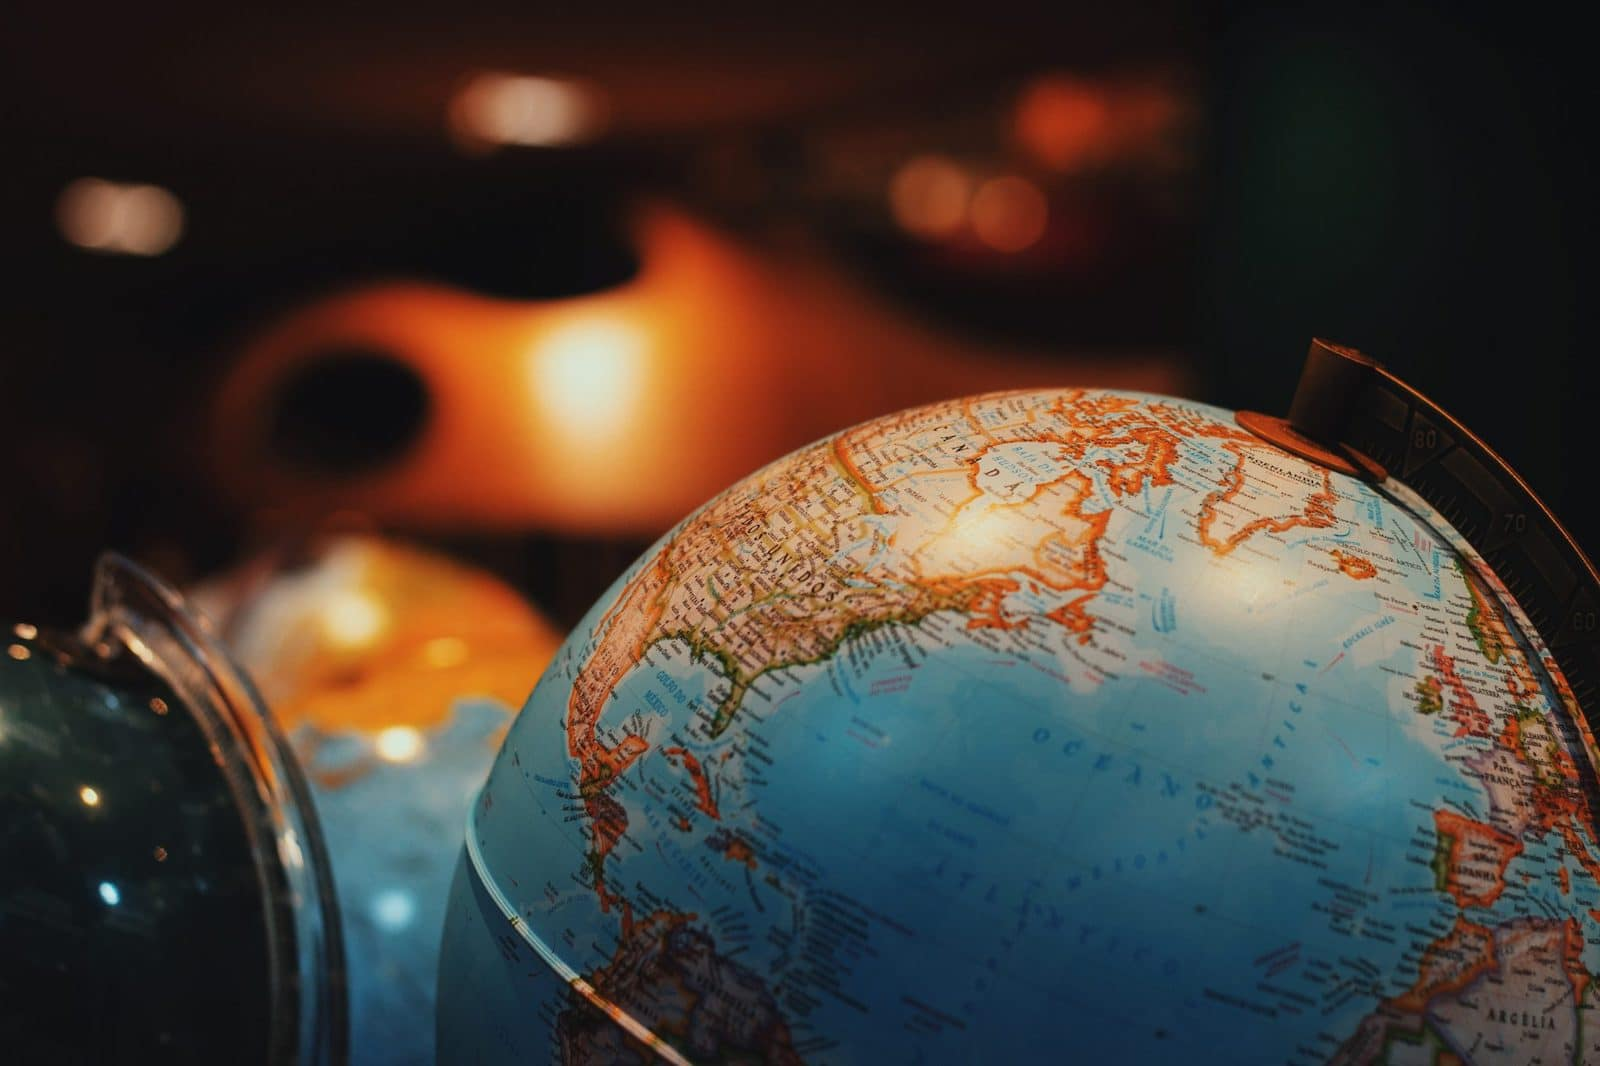 Globe of the world, illustrating that a language can be a vehicle for travel